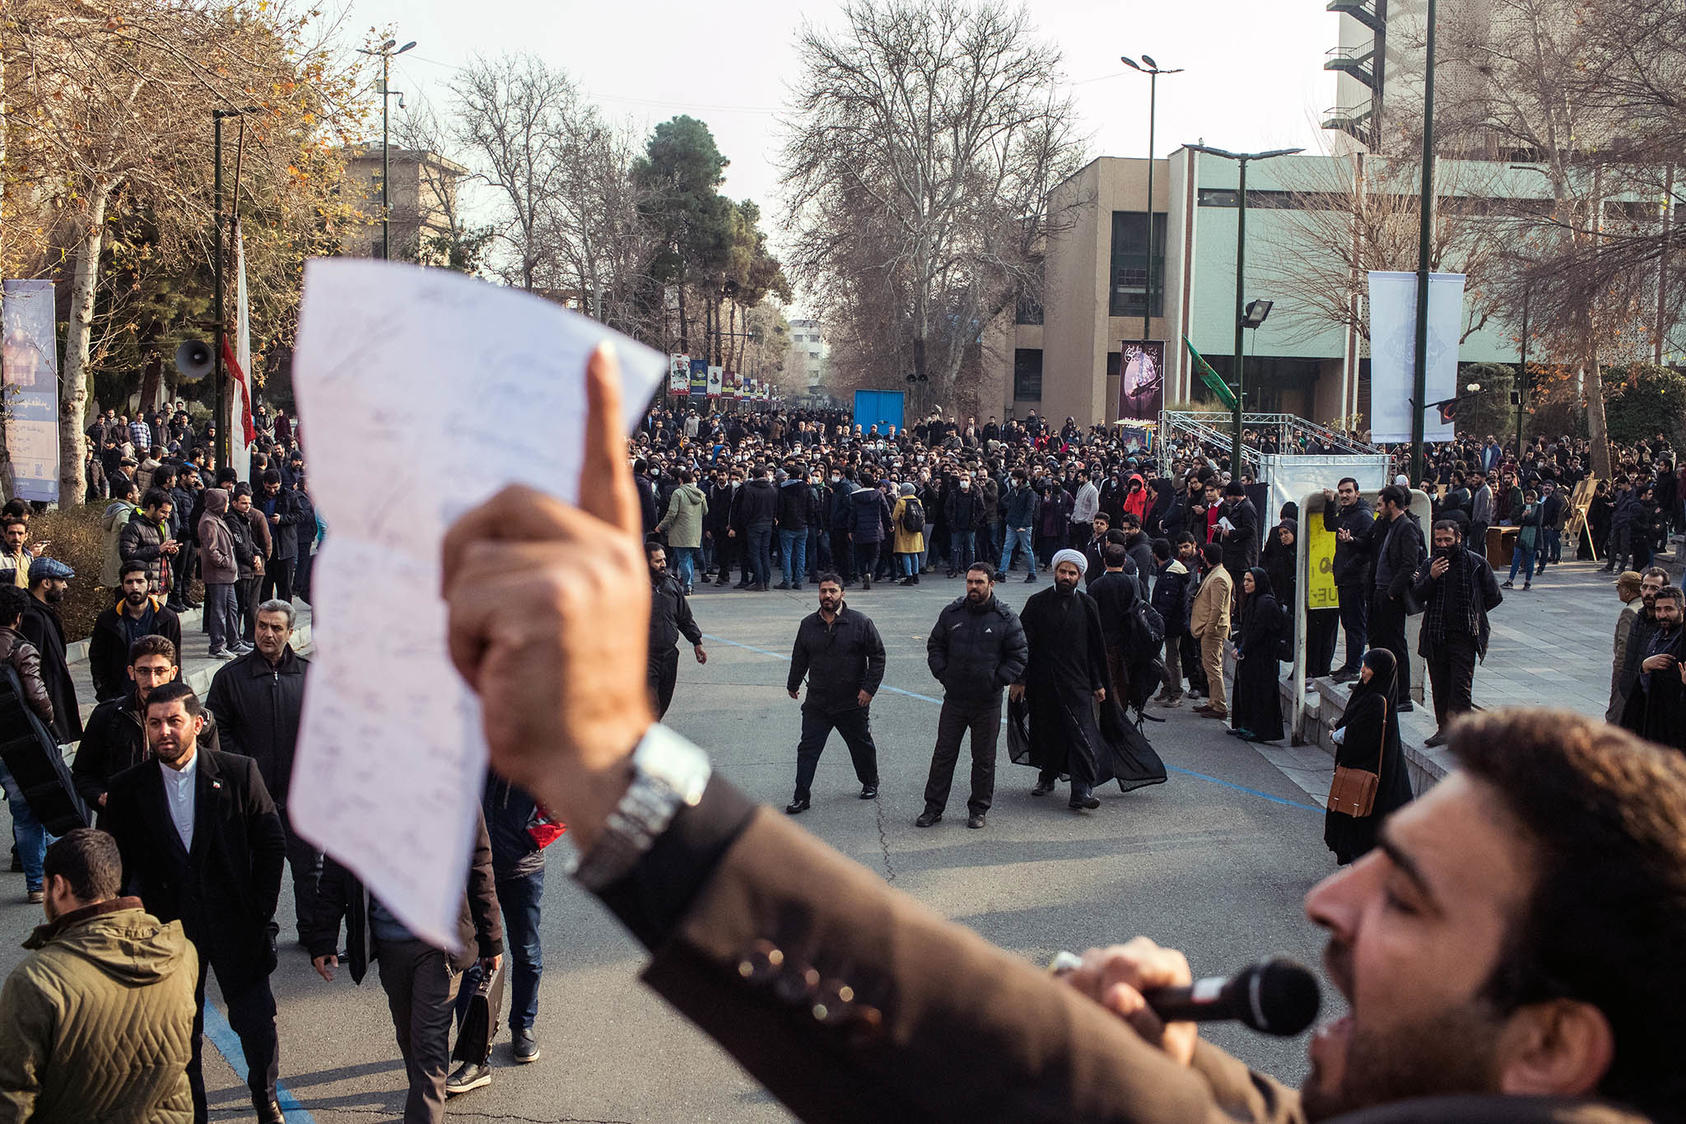 Anti-government protesters rally at Tehran University in Tehran on Tuesday, Jan. 14, 2020. (Arash Khamooshi/The New York Times)